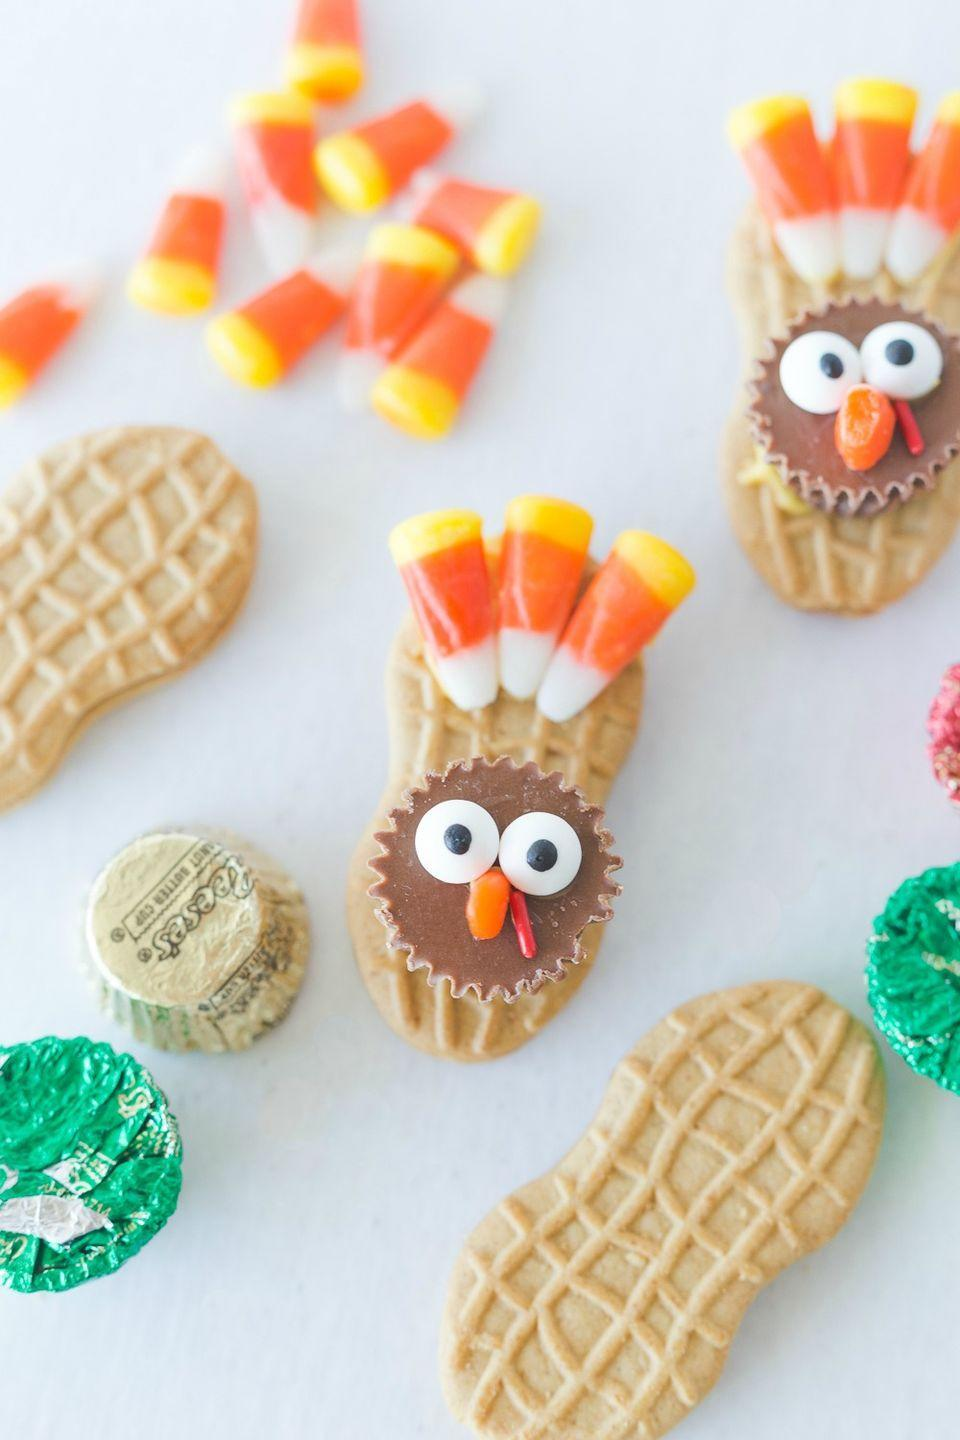 "<p>A craft and snack in one, these candy-covered Thanksgiving cookies are sure to bring the holiday fun. </p><p><strong>Get the tutorial at <a href=""https://www.iheartnaptime.net/nutter-butter-turkey-cookies/"" rel=""nofollow noopener"" target=""_blank"" data-ylk=""slk:I Heart Naptime"" class=""link rapid-noclick-resp"">I Heart Naptime</a>.</strong></p><p><a class=""link rapid-noclick-resp"" href=""https://www.amazon.com/Zachary-Confections-Corn-Candy-Pound/dp/B002MYF3T0/?tag=syn-yahoo-20&ascsubtag=%5Bartid%7C10050.g.22626432%5Bsrc%7Cyahoo-us"" rel=""nofollow noopener"" target=""_blank"" data-ylk=""slk:SHOP CANDY CORN"">SHOP CANDY CORN</a></p>"